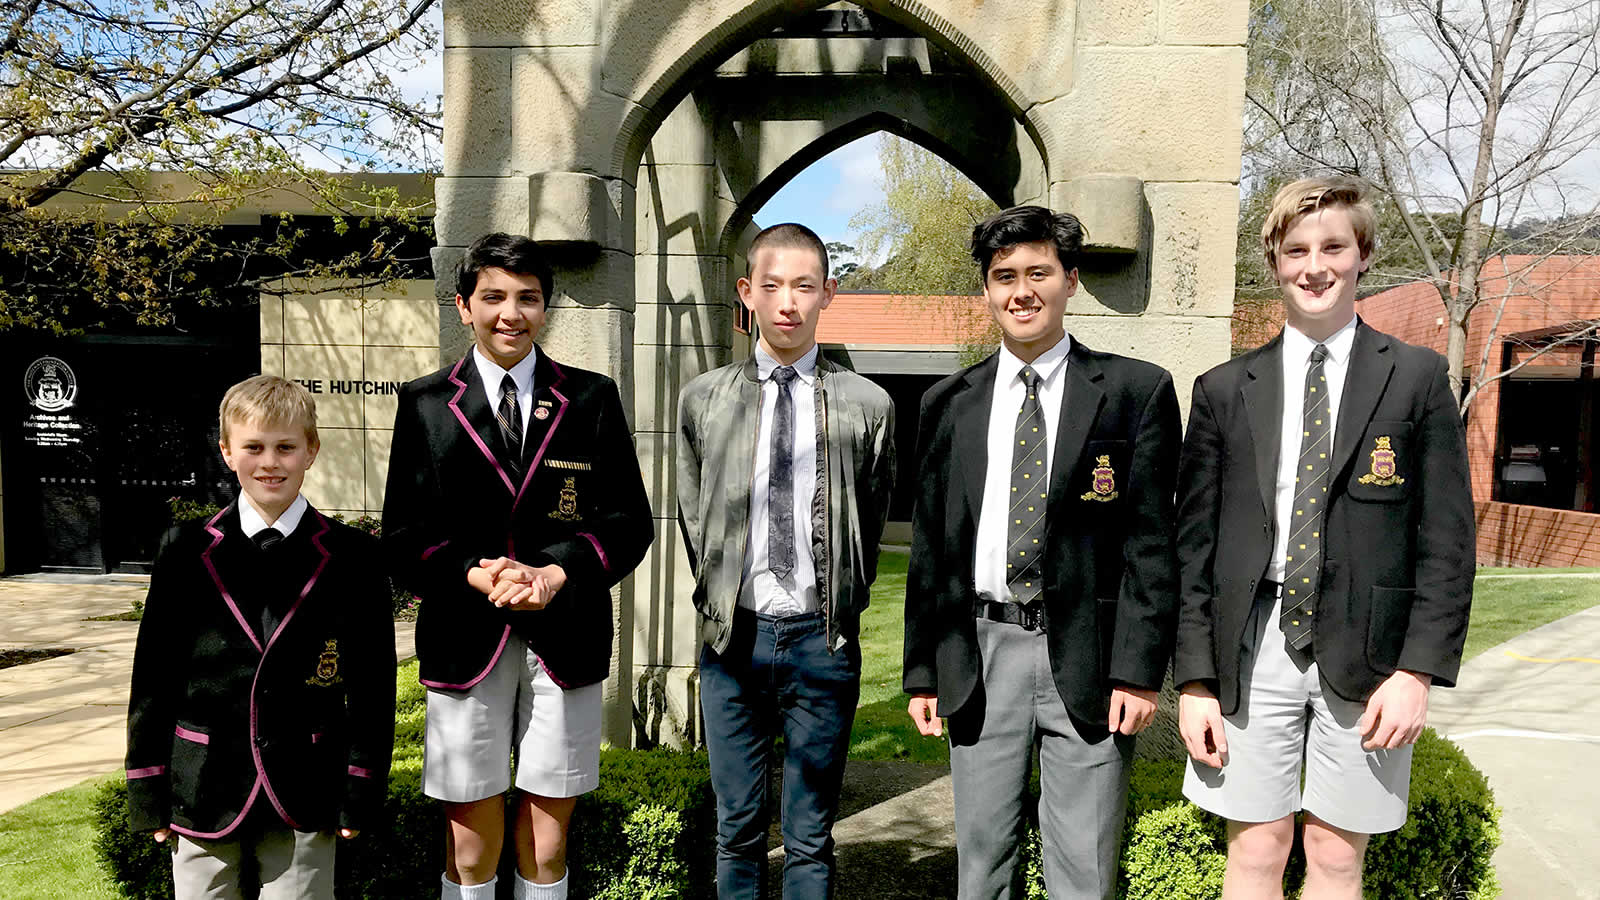 Darcy Sillifant, Jeff Roy-Chowdhury, Mr Xiaoji Xie (Chinese Assistant), Rhys Evans, Matthew Goldsmith.